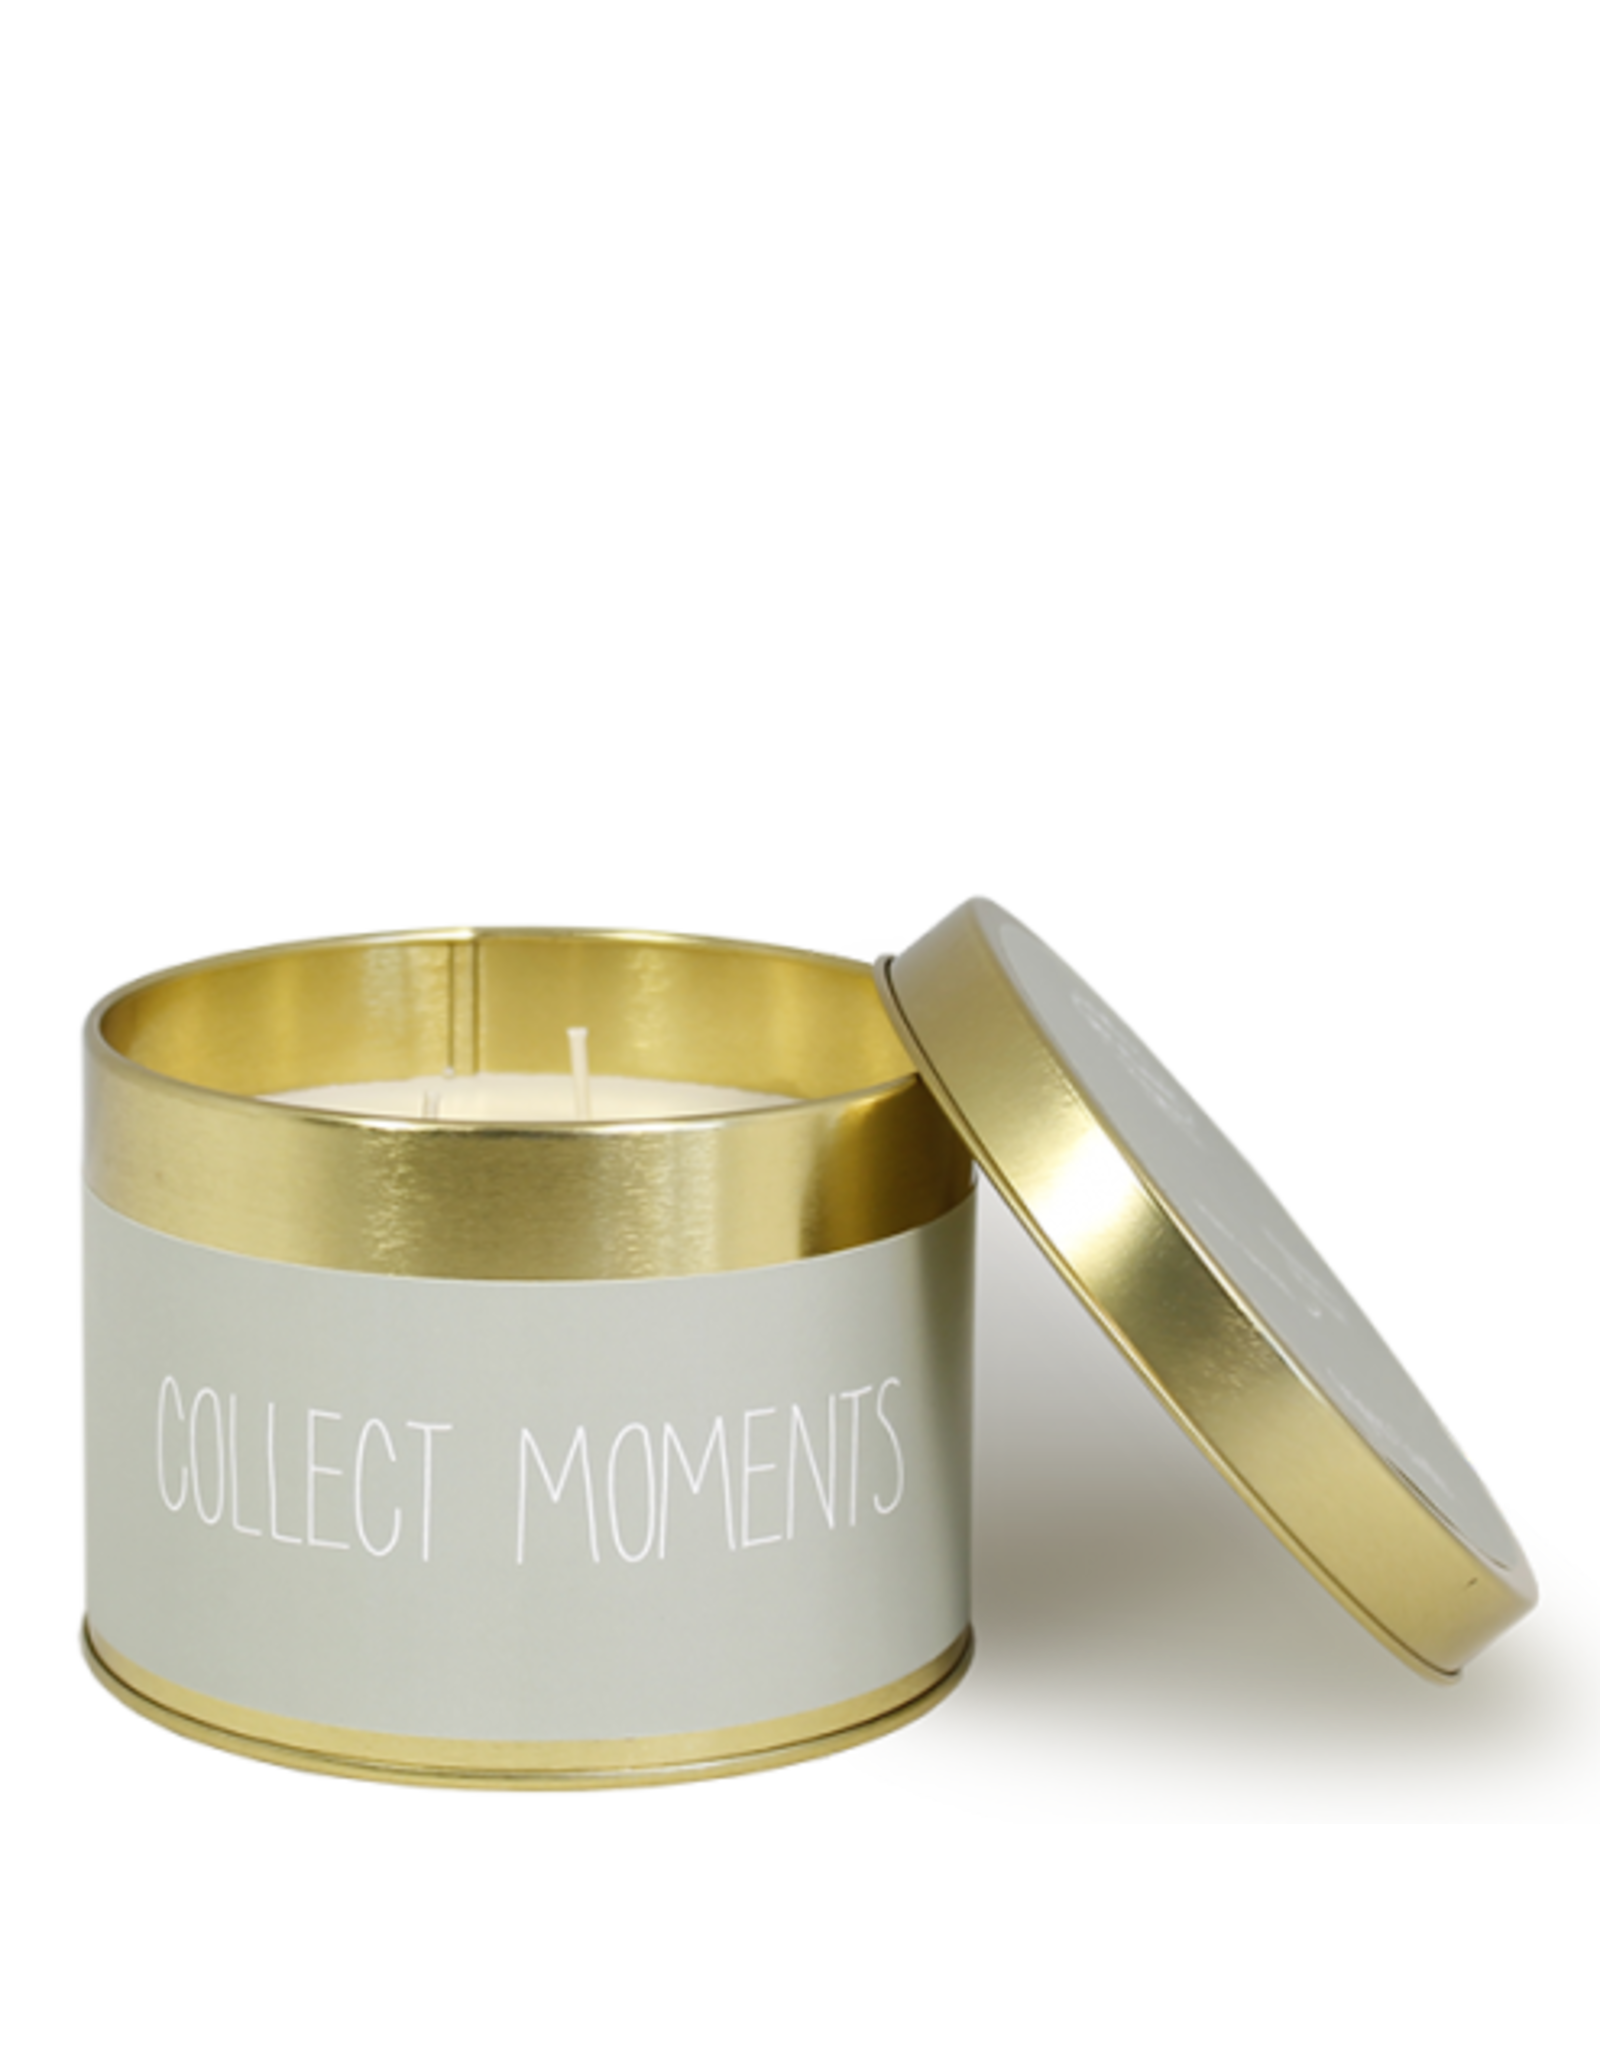 My flame Lifestyle Sojakaars | Collect Moments | Geur: Minty Bamboo